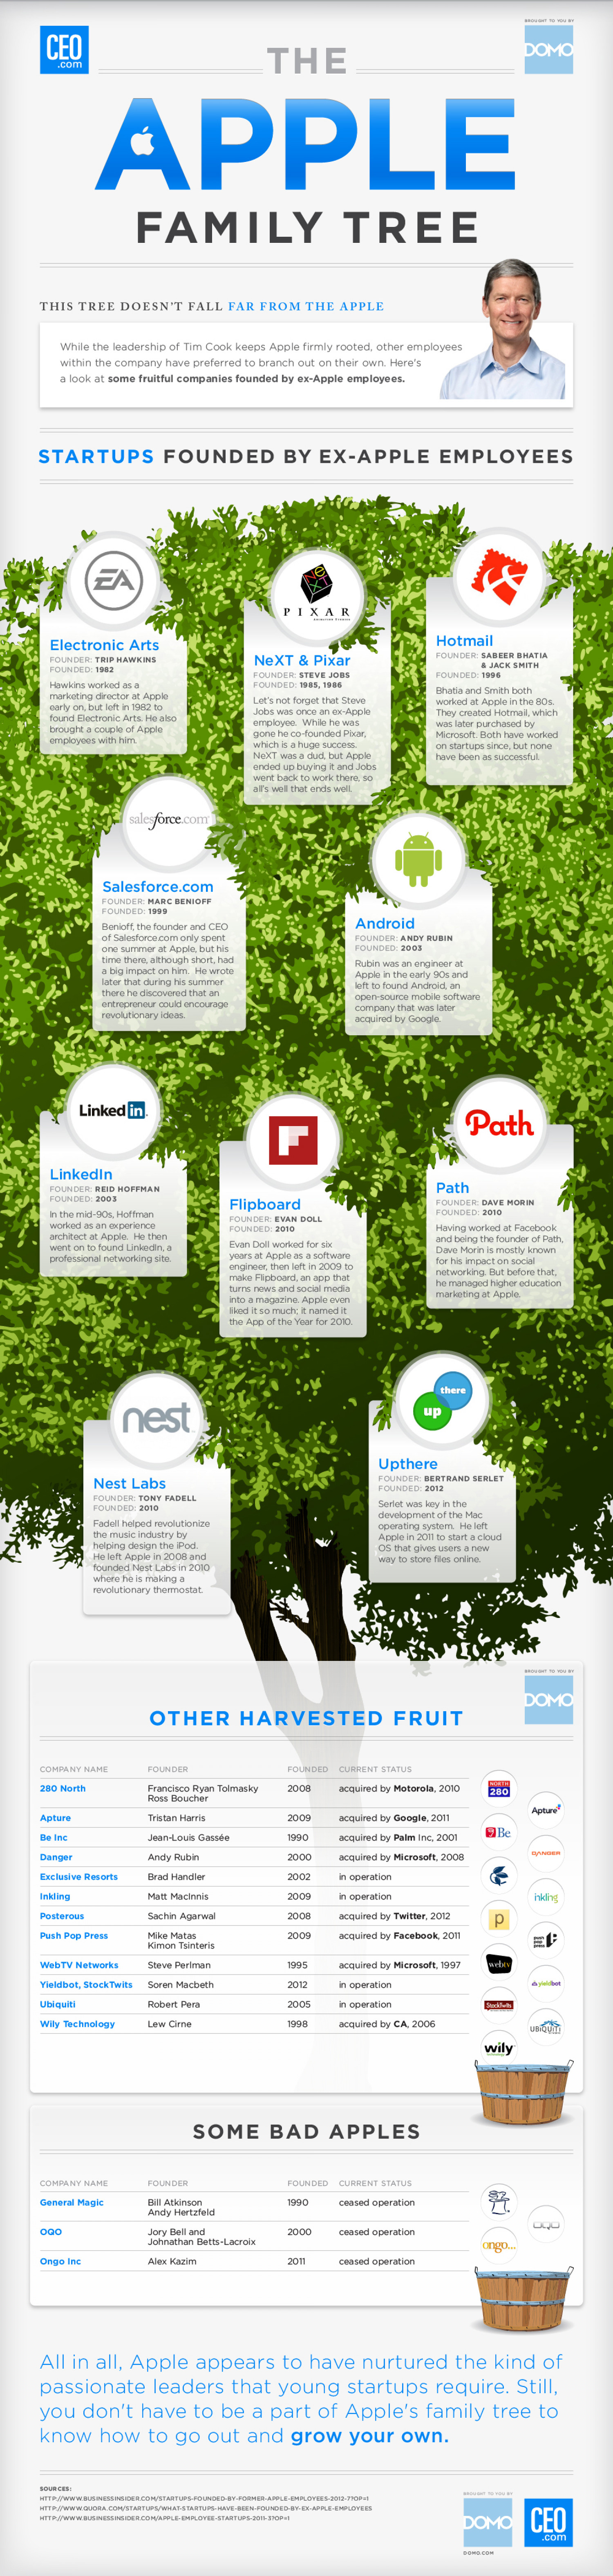 The Apple Family Tree Infographic